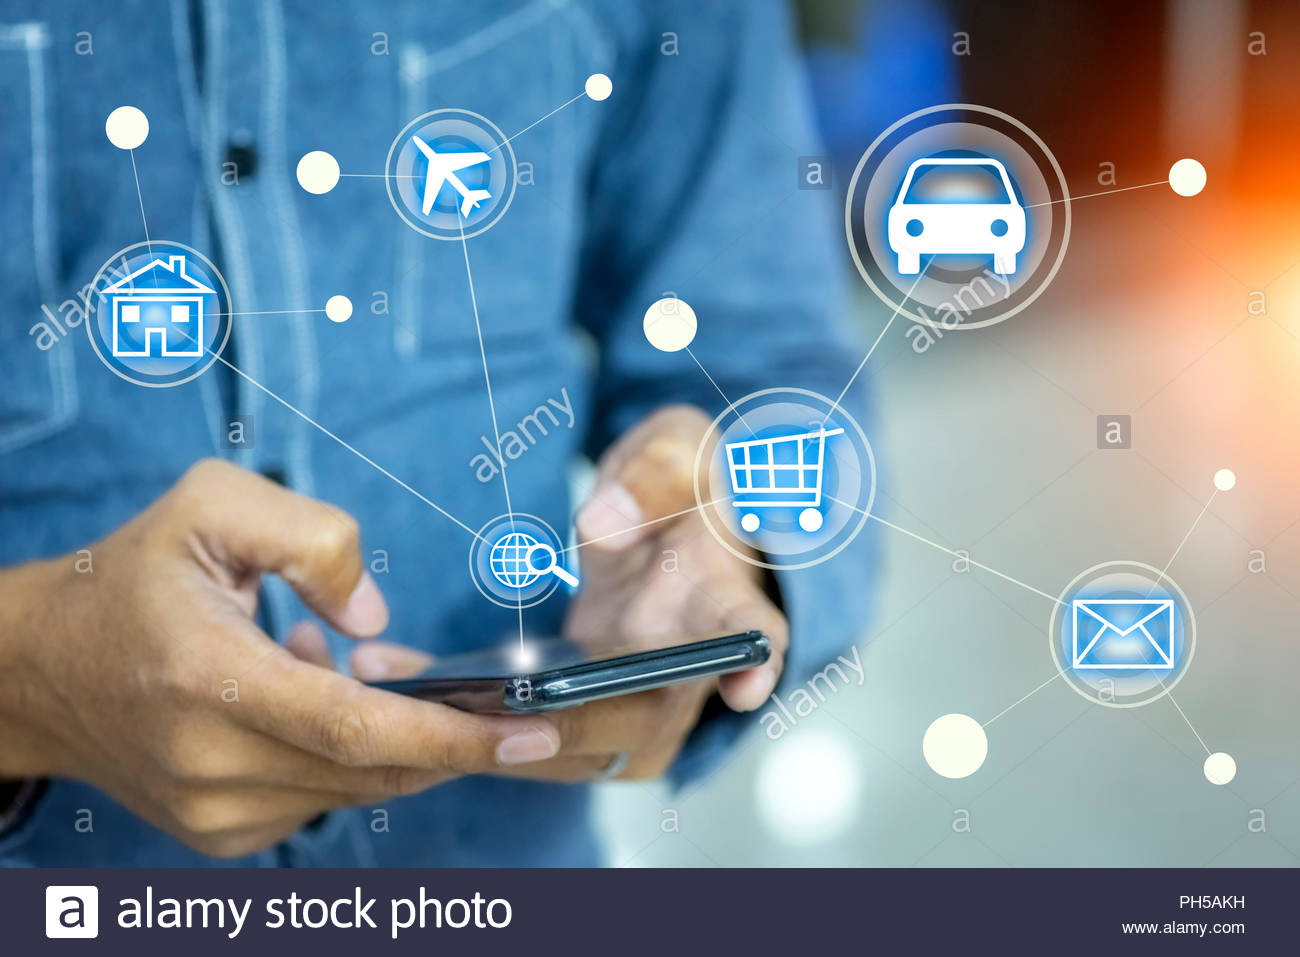 men using smartphone for searching information with internet icon,  internet of things 'IOT' concept - Stock Image